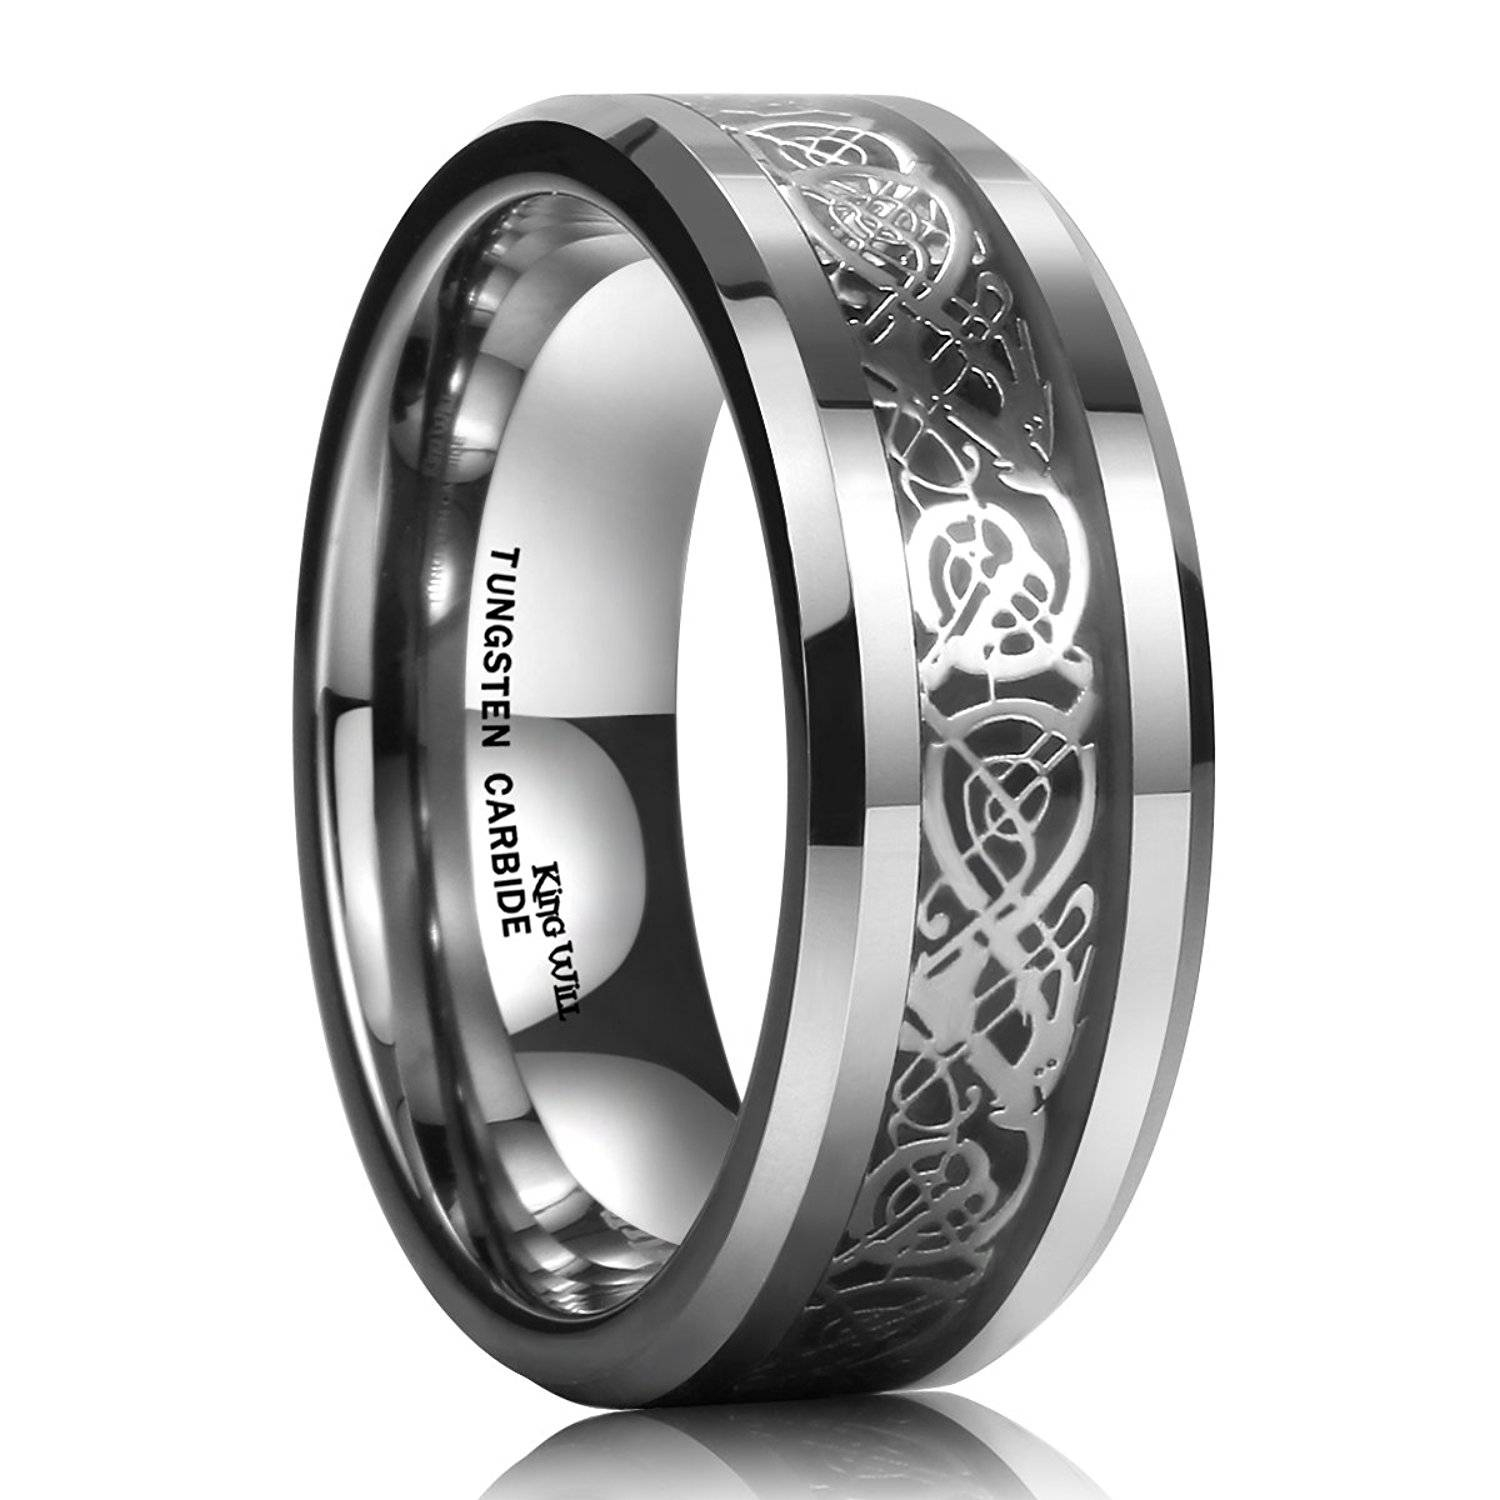 Ring Irish Style Wedding Rings Marquise Diamond Wedding Ring Regarding Men's Wedding Bands Styles (View 12 of 15)